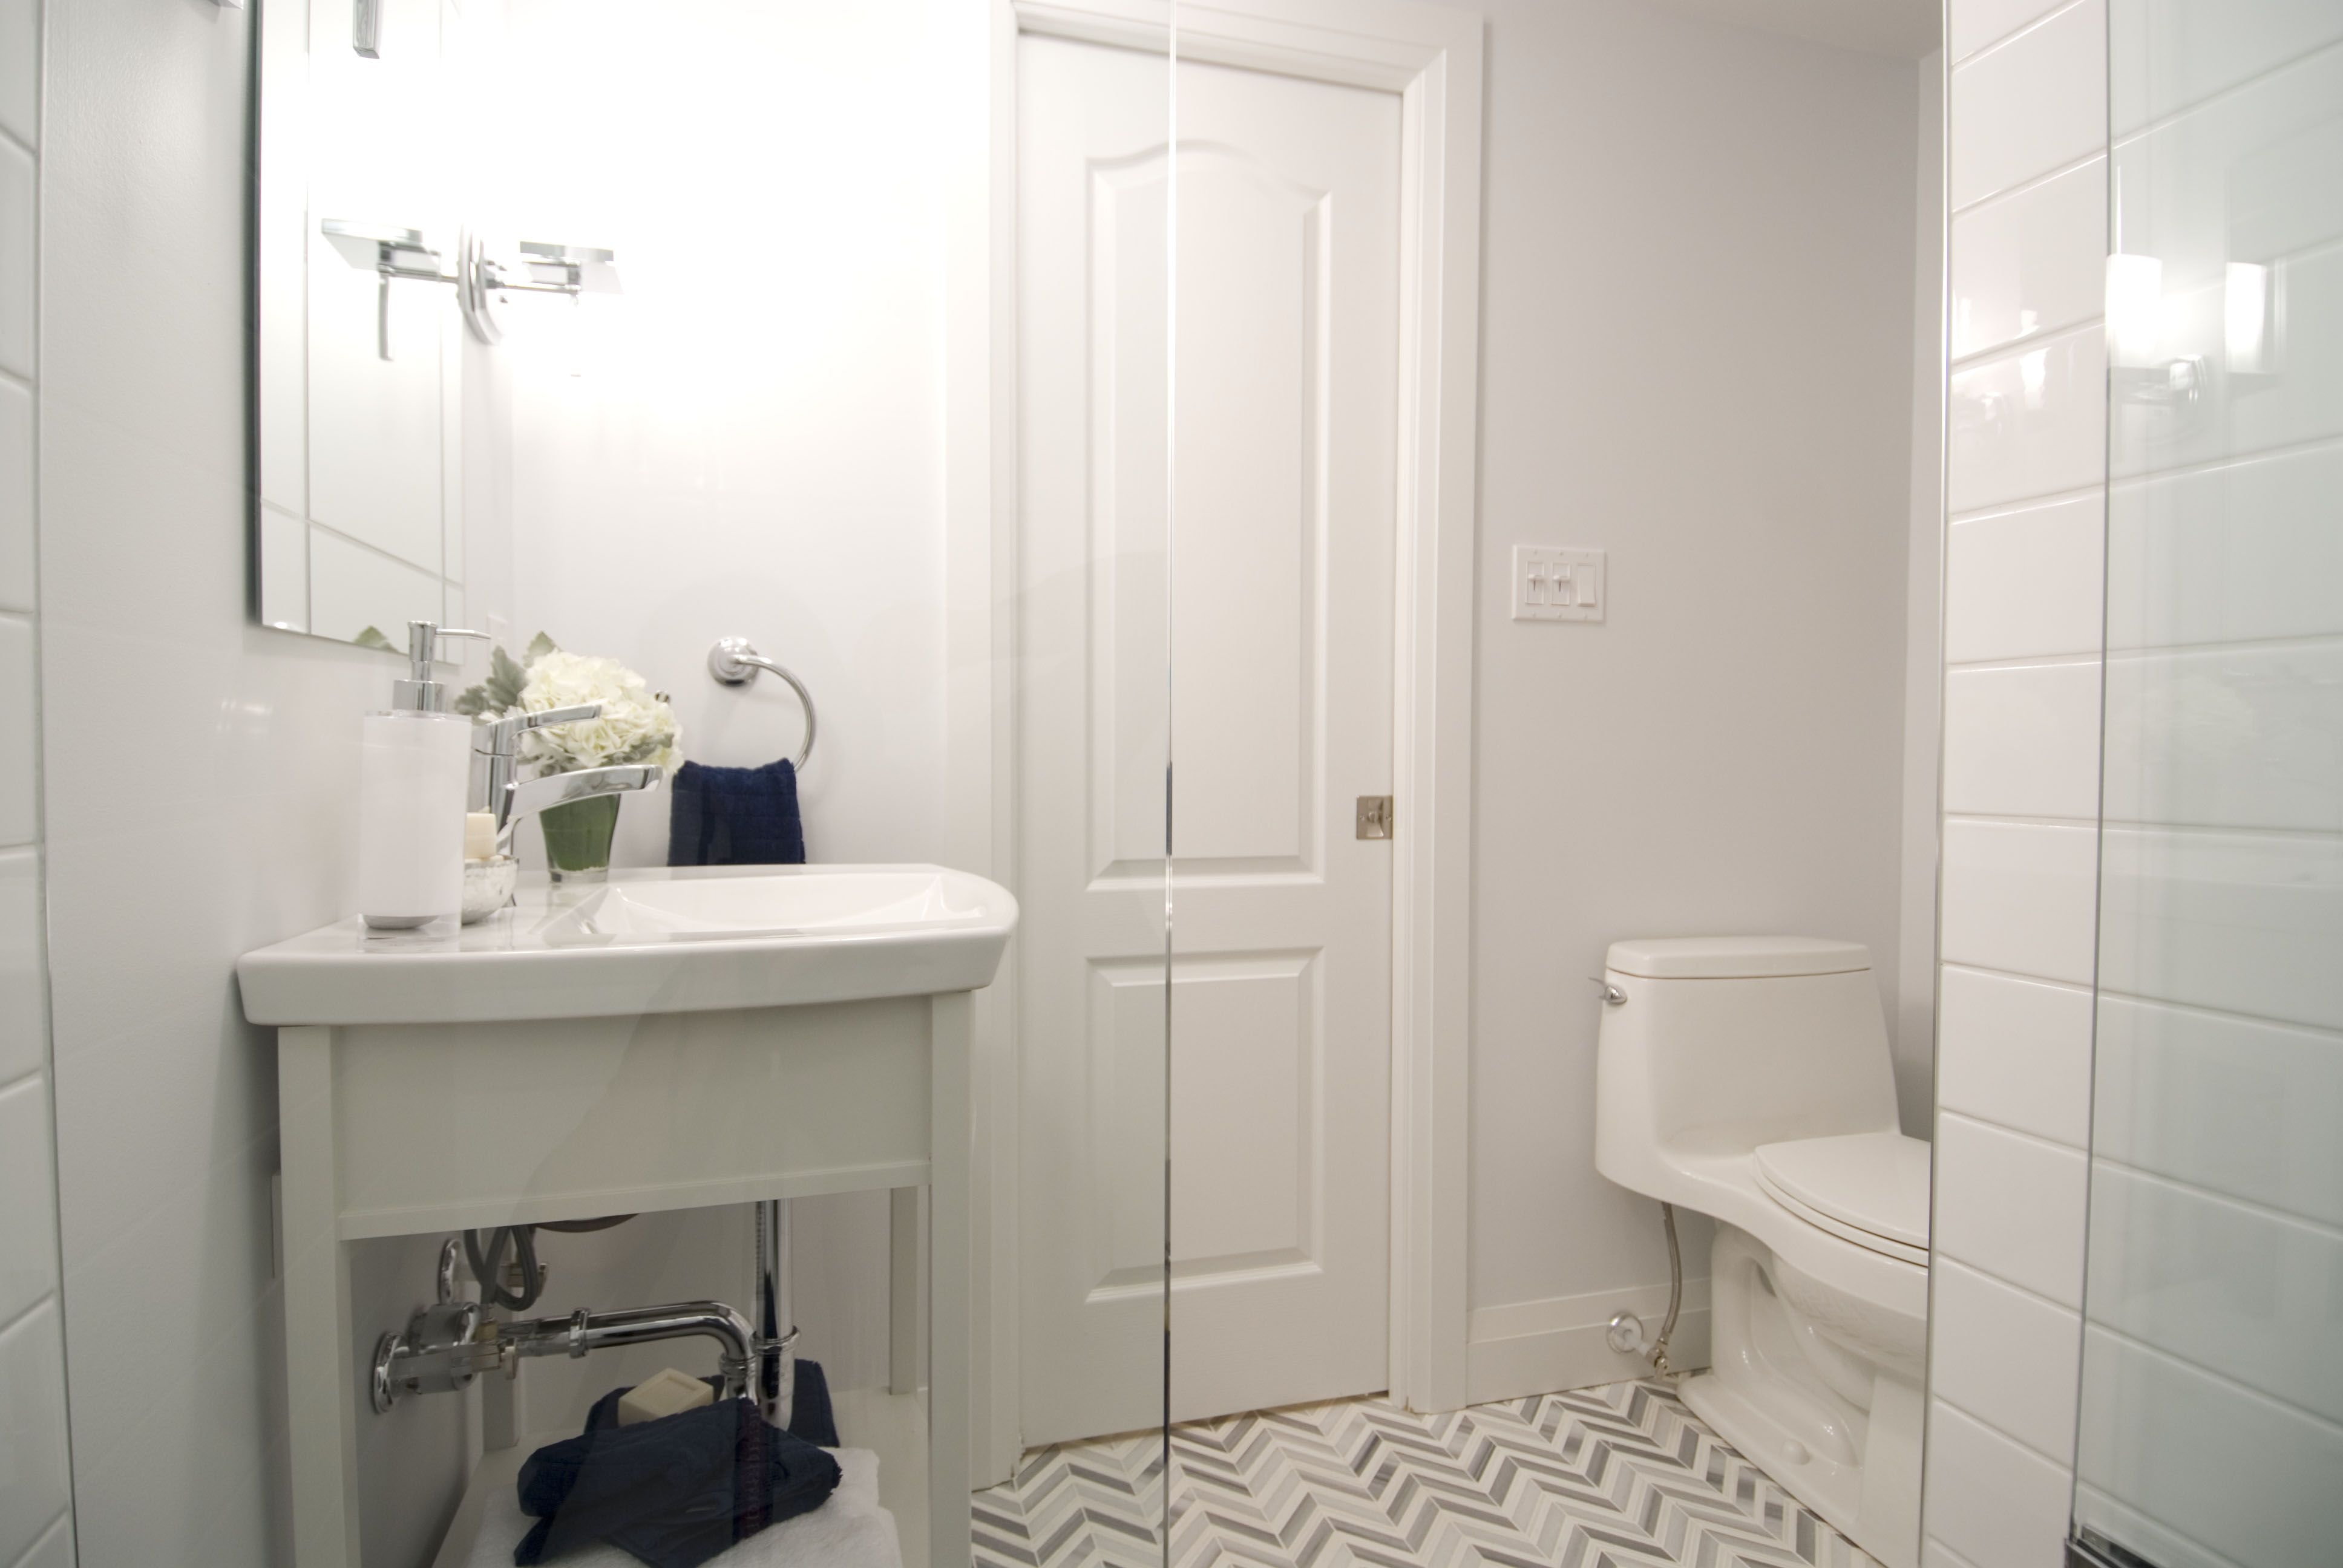 Renovated Basement Bathroom, Income Property HGTV